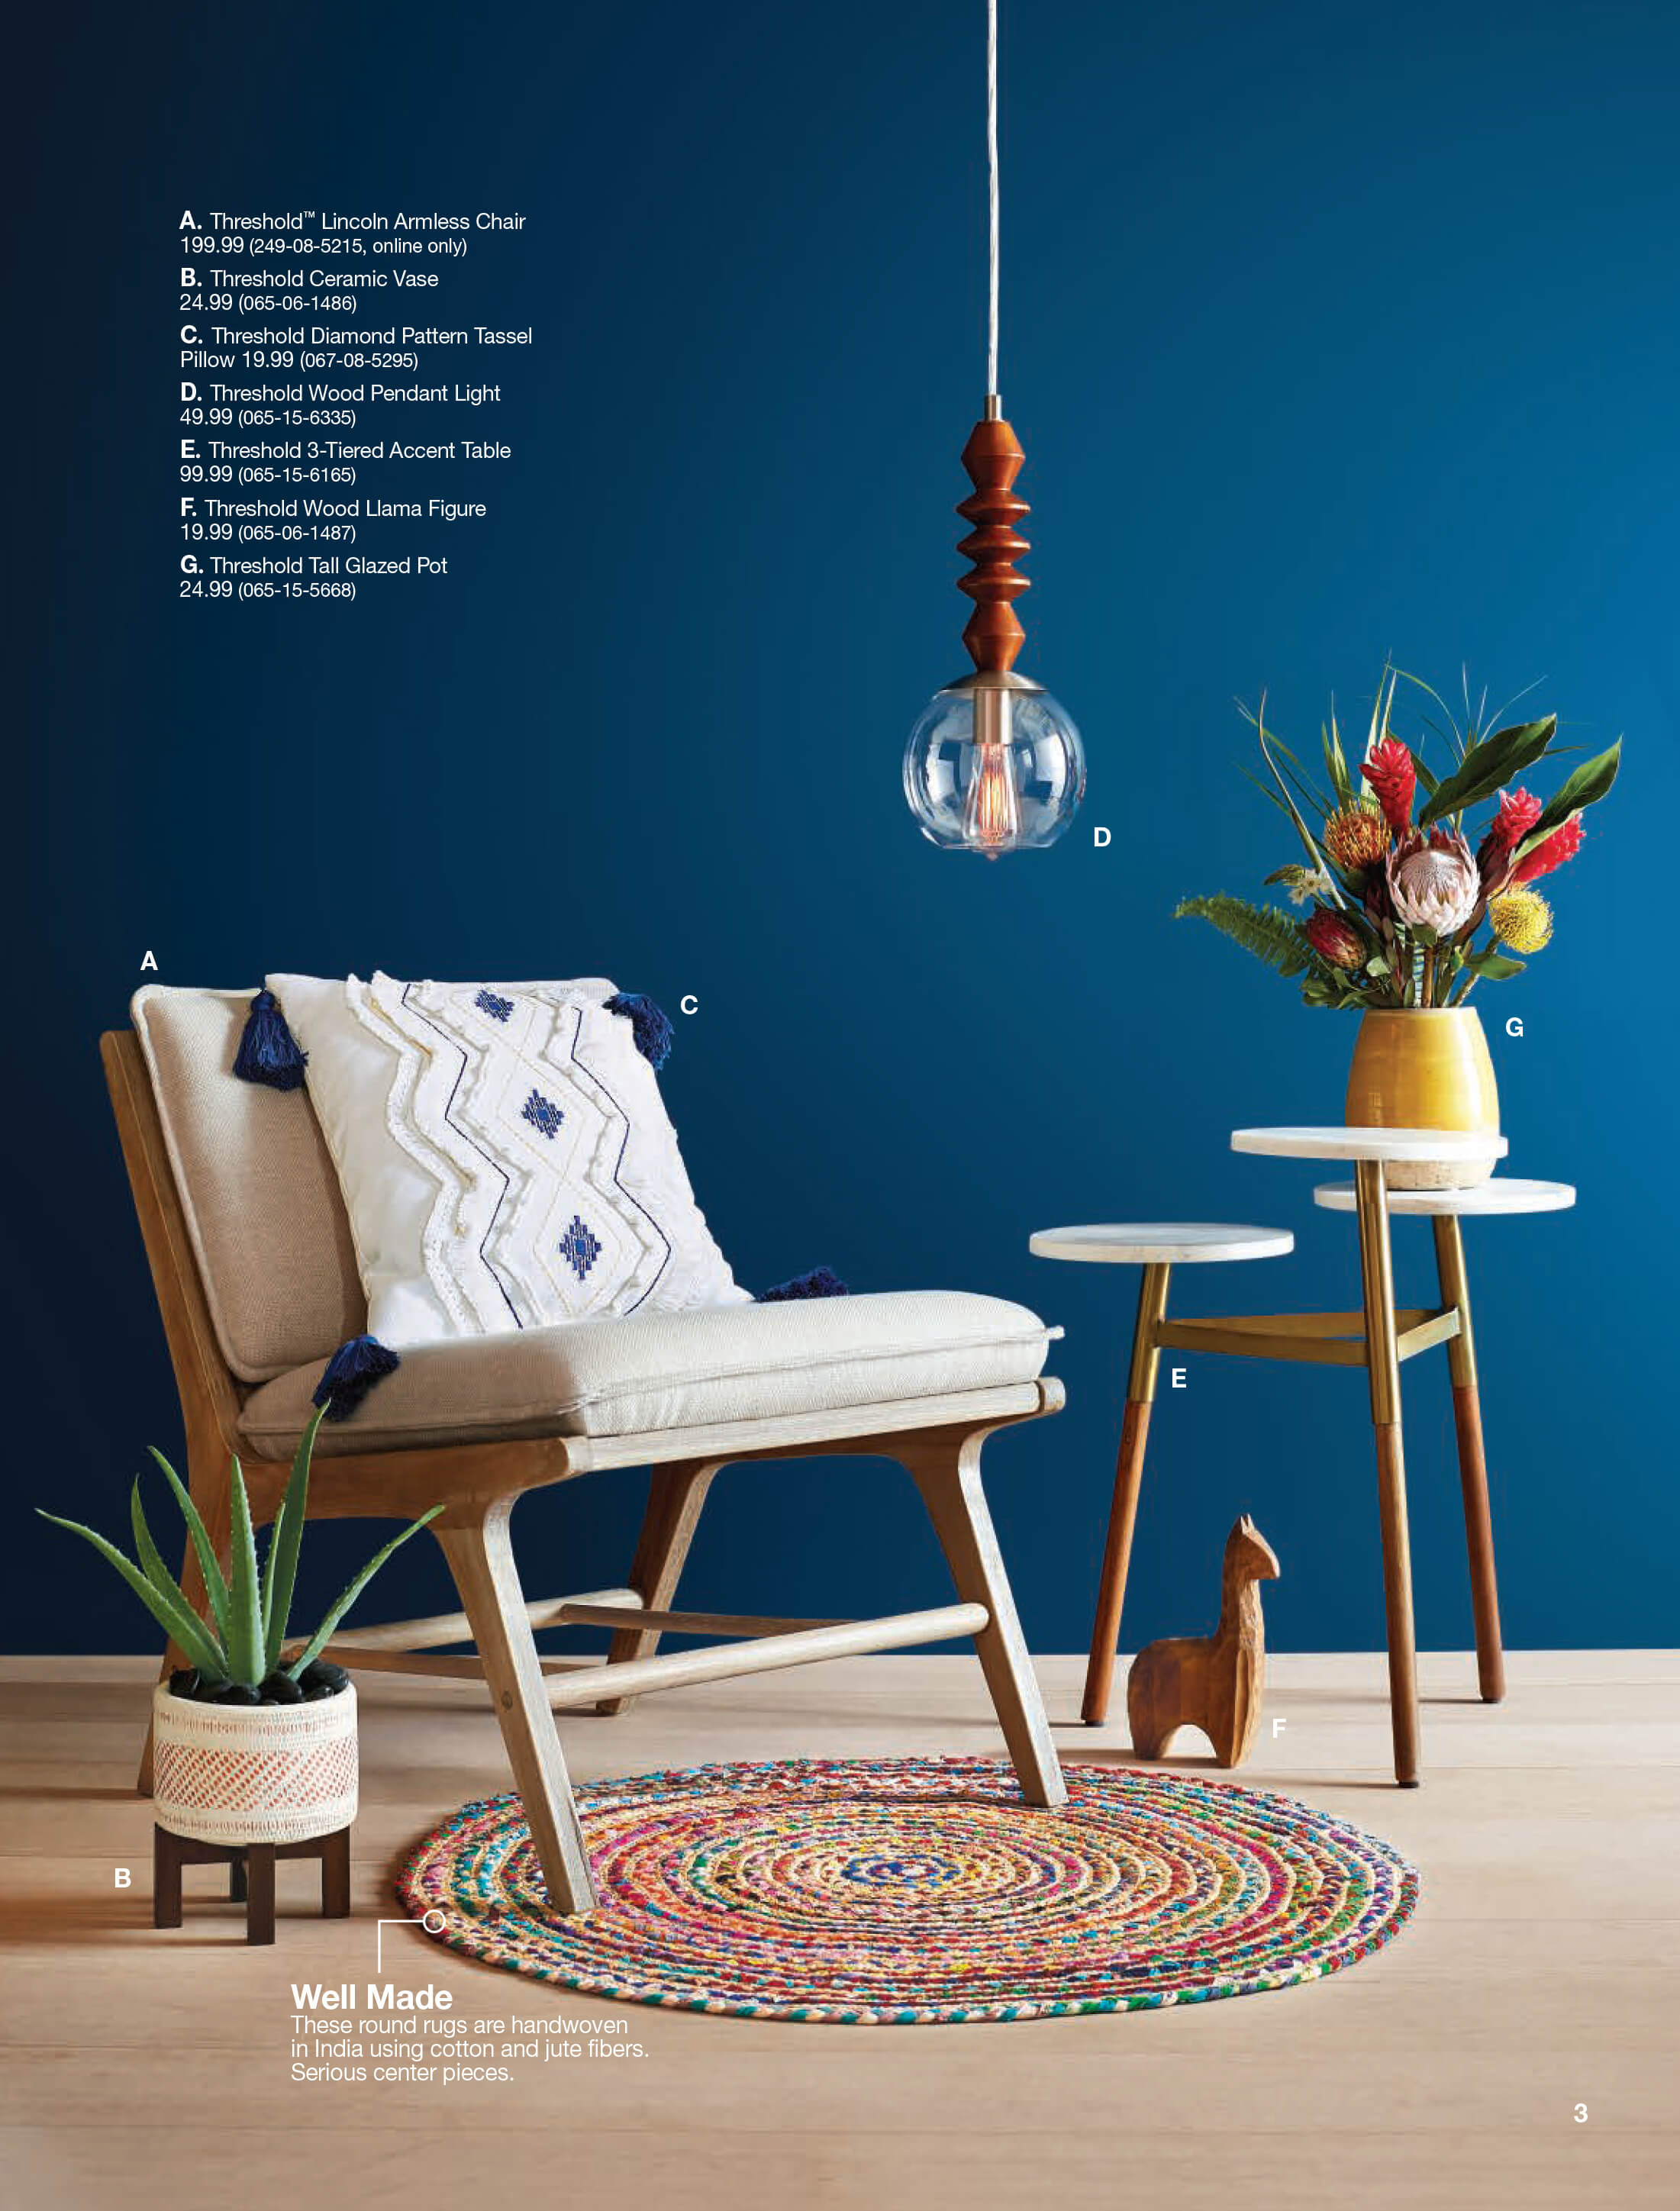 new target home product and emily henderson first look spring catalog blue accent table unwanted furniture vaughan baby bedding bath beyond cast iron skillet painting pine ikea